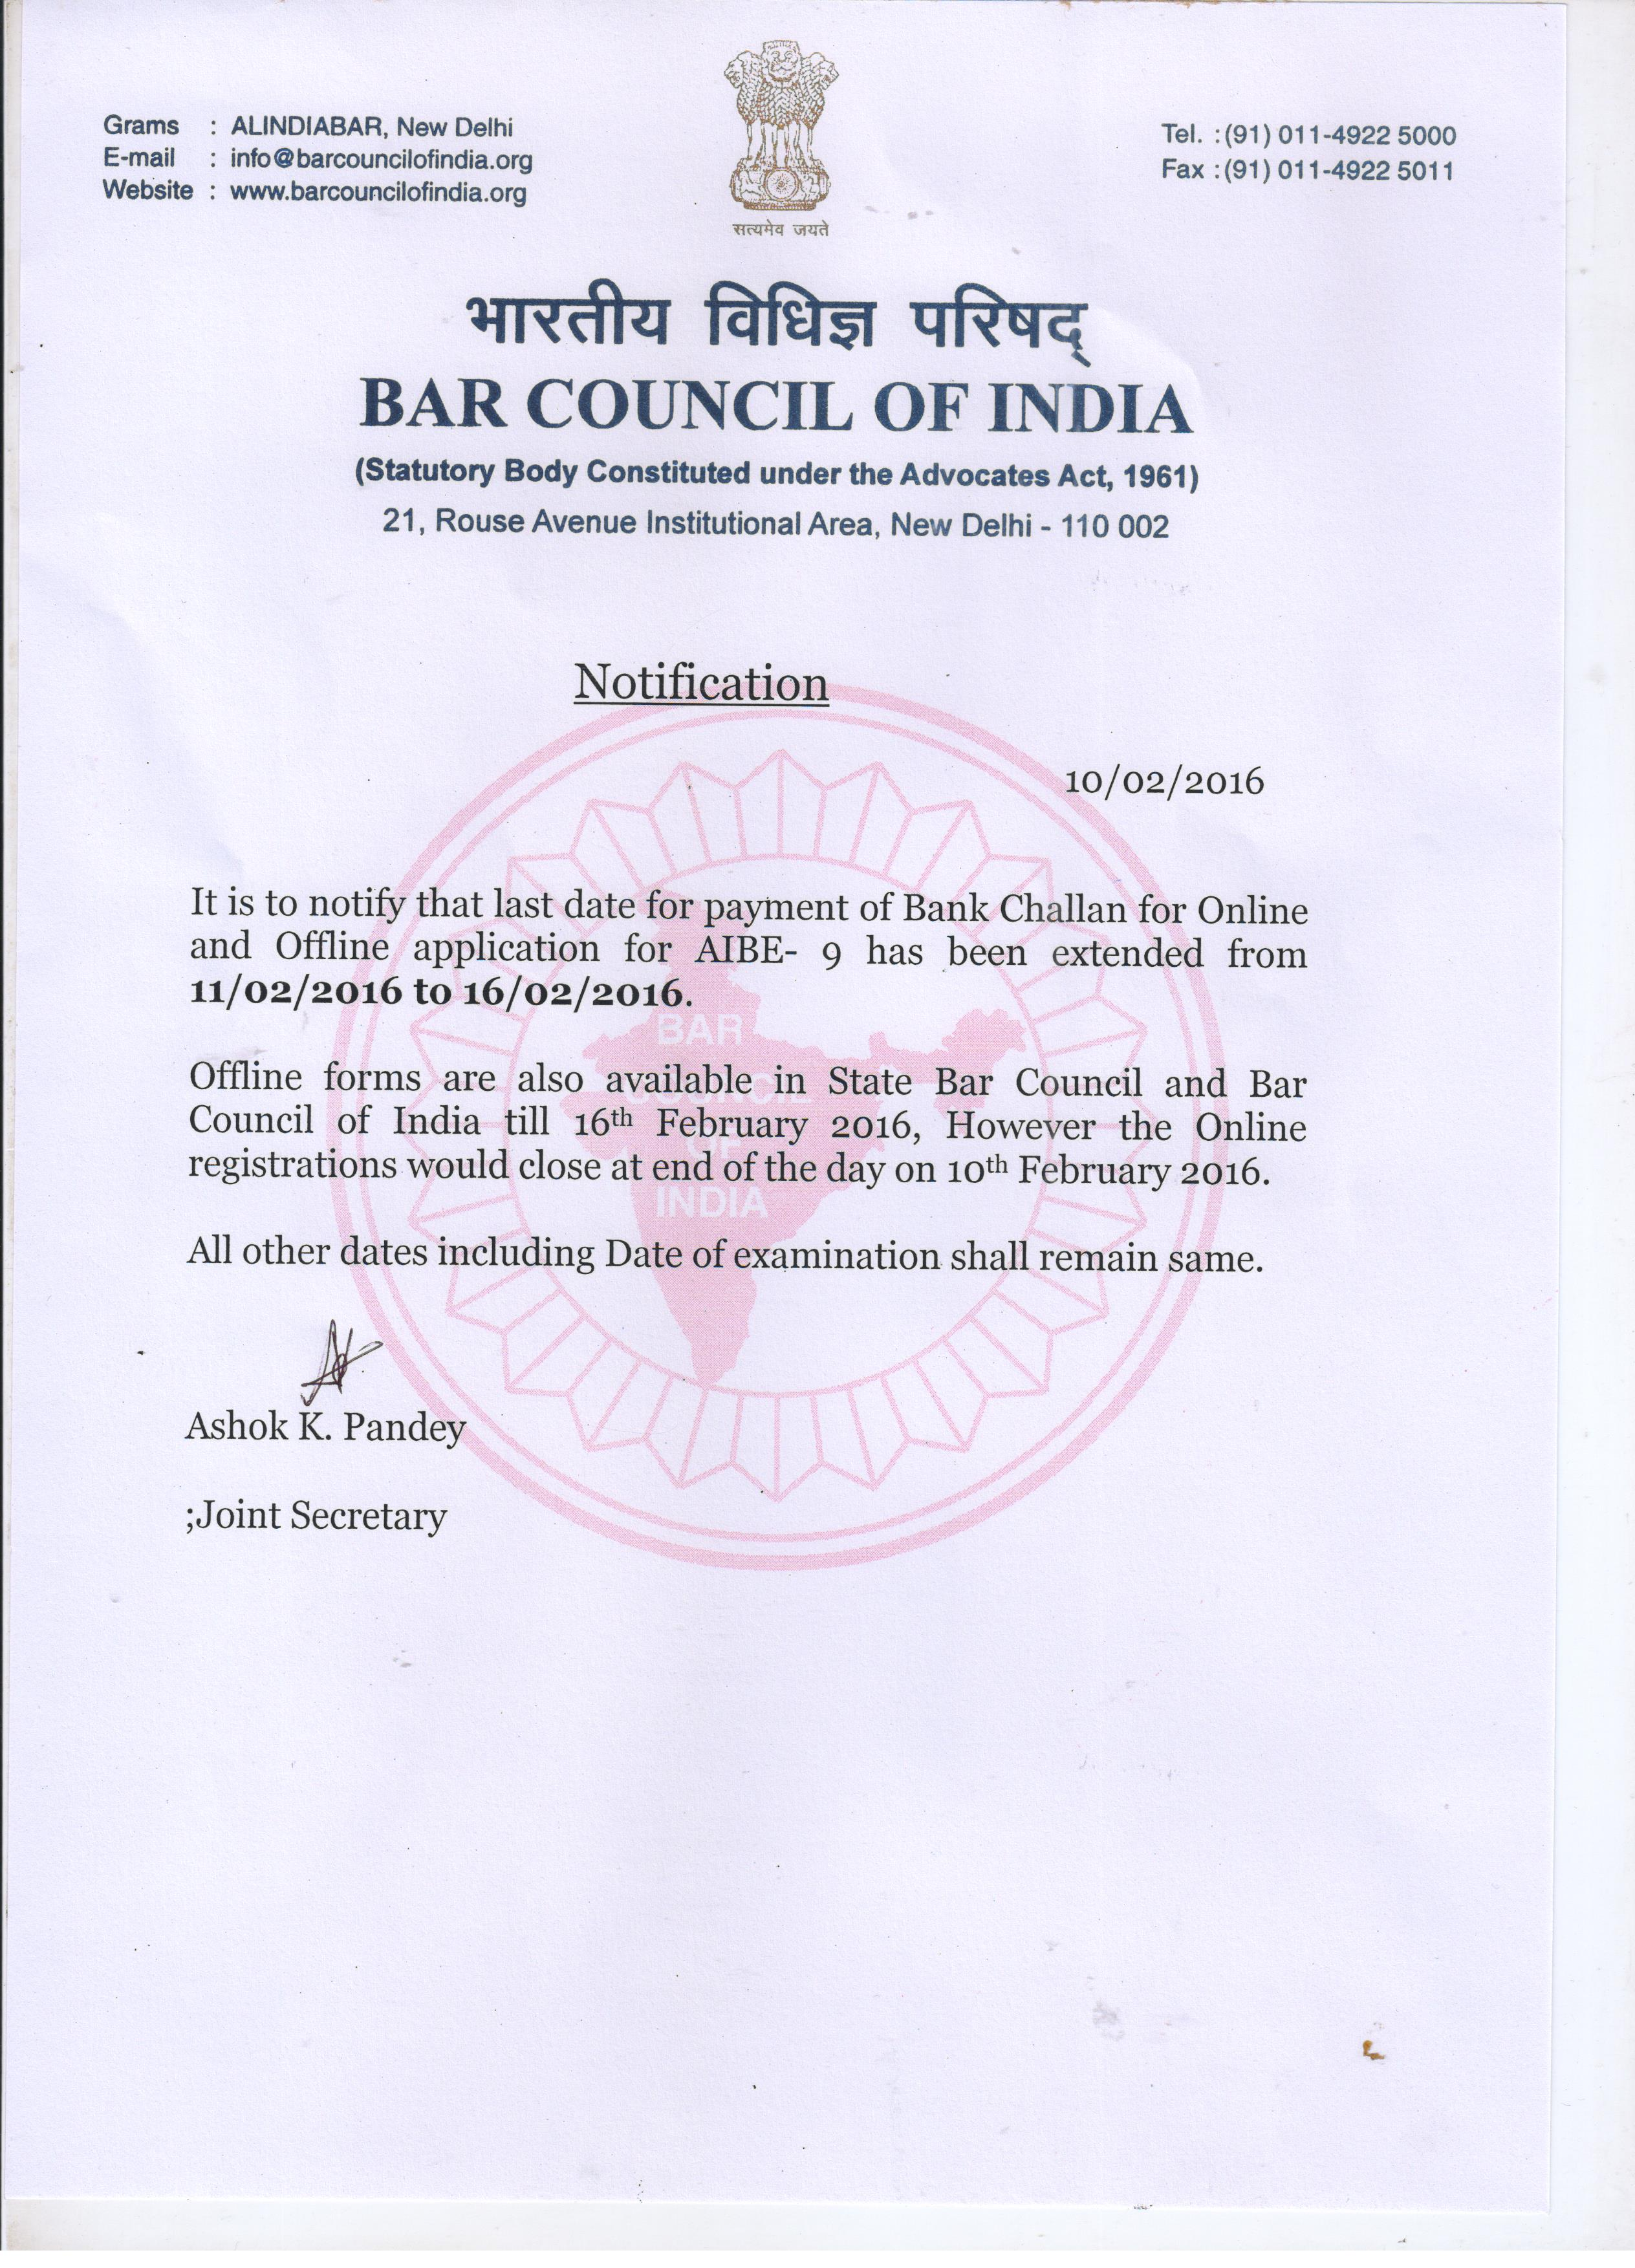 bar council of india The bar council of india (bci) is a statutory body, constituted by government of india under advocates act 1961 the main objective intended was to control and govern the working of all immediate subsidiary state-level bar councils besides laying down the standards of professional conduct and etiquette.